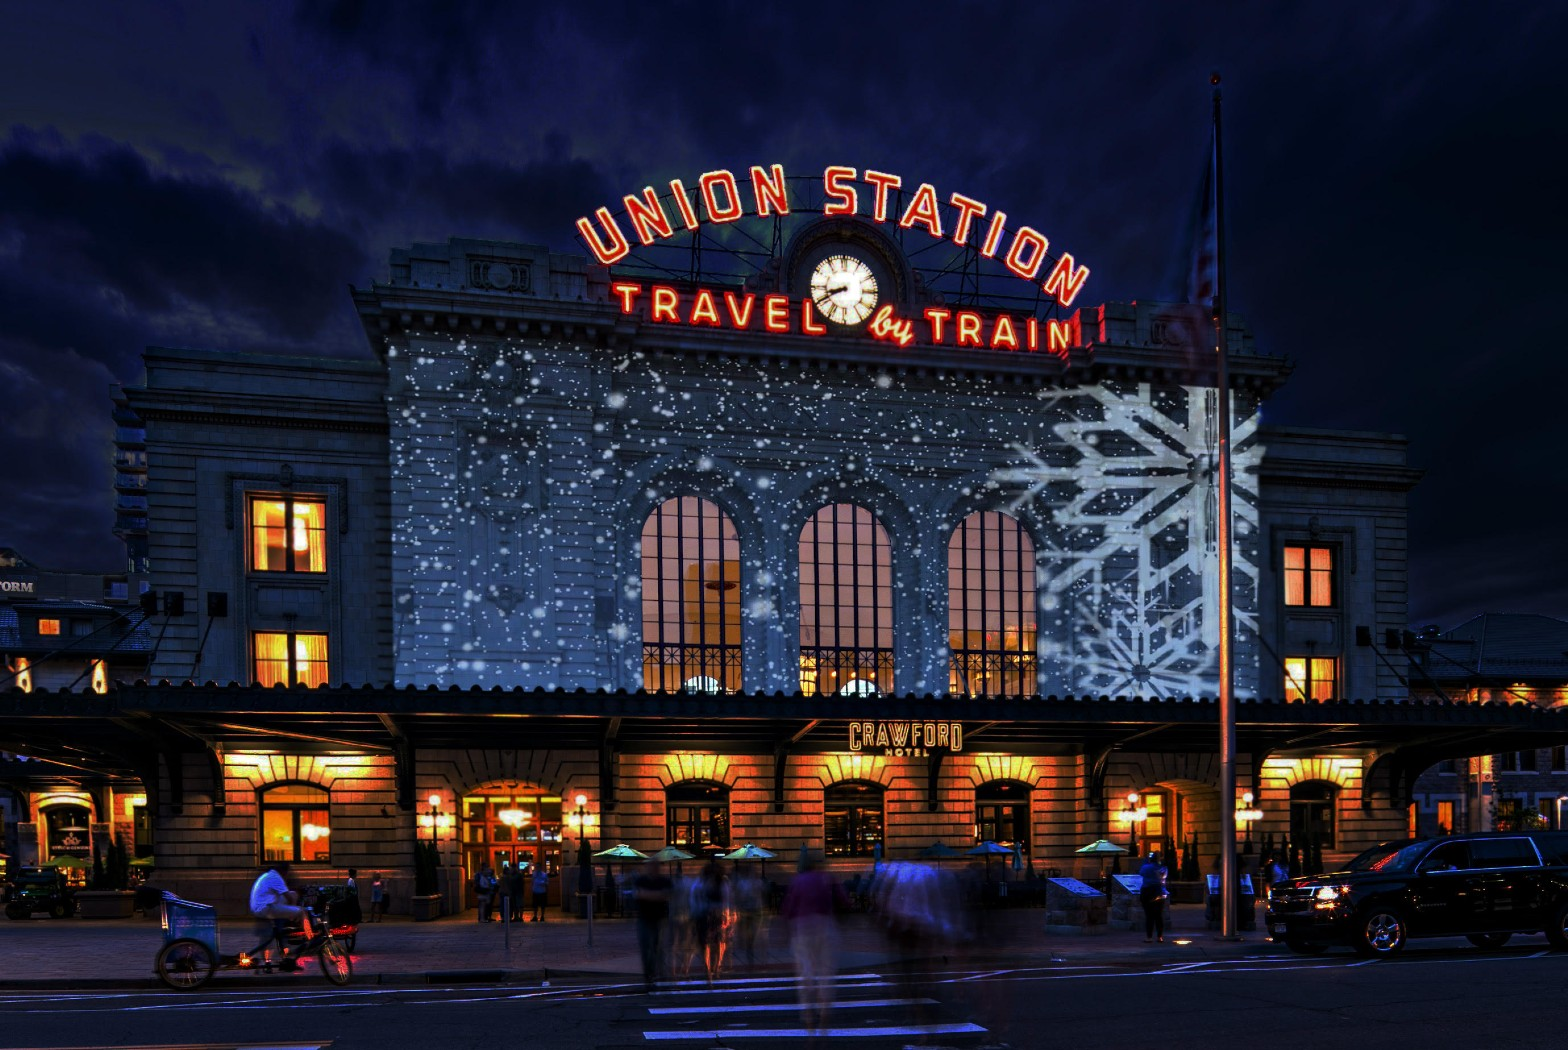 union station at night with snowflakes projected on front of building